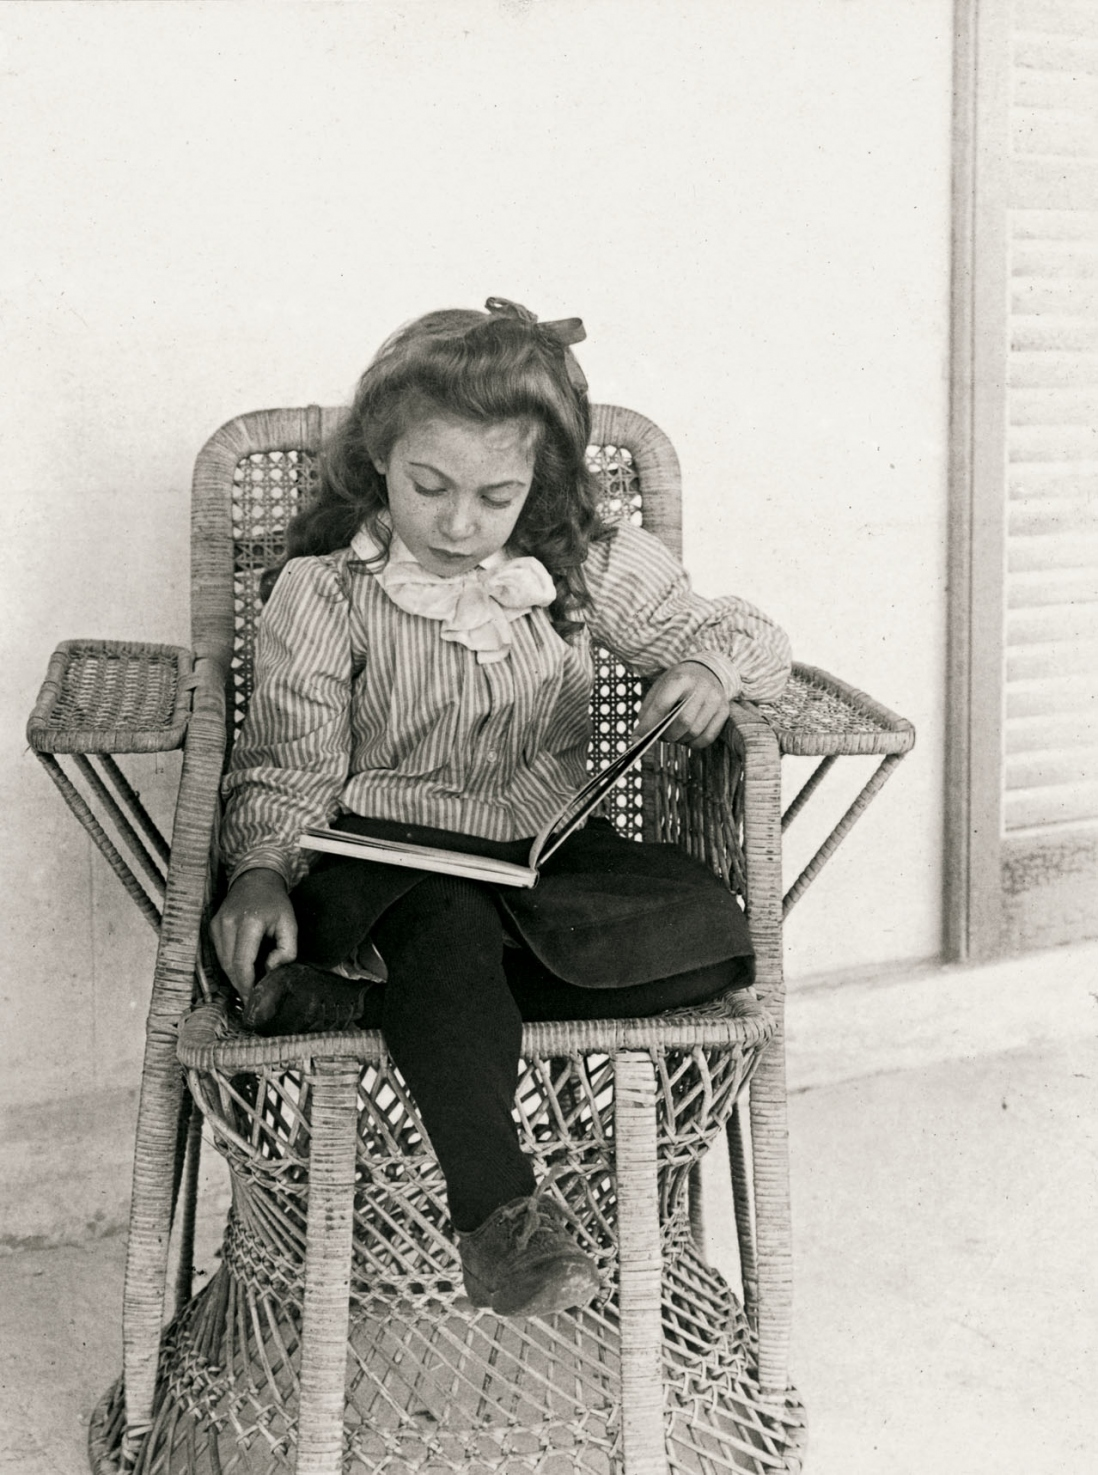 Young girl sits in a cane chair reading a book.